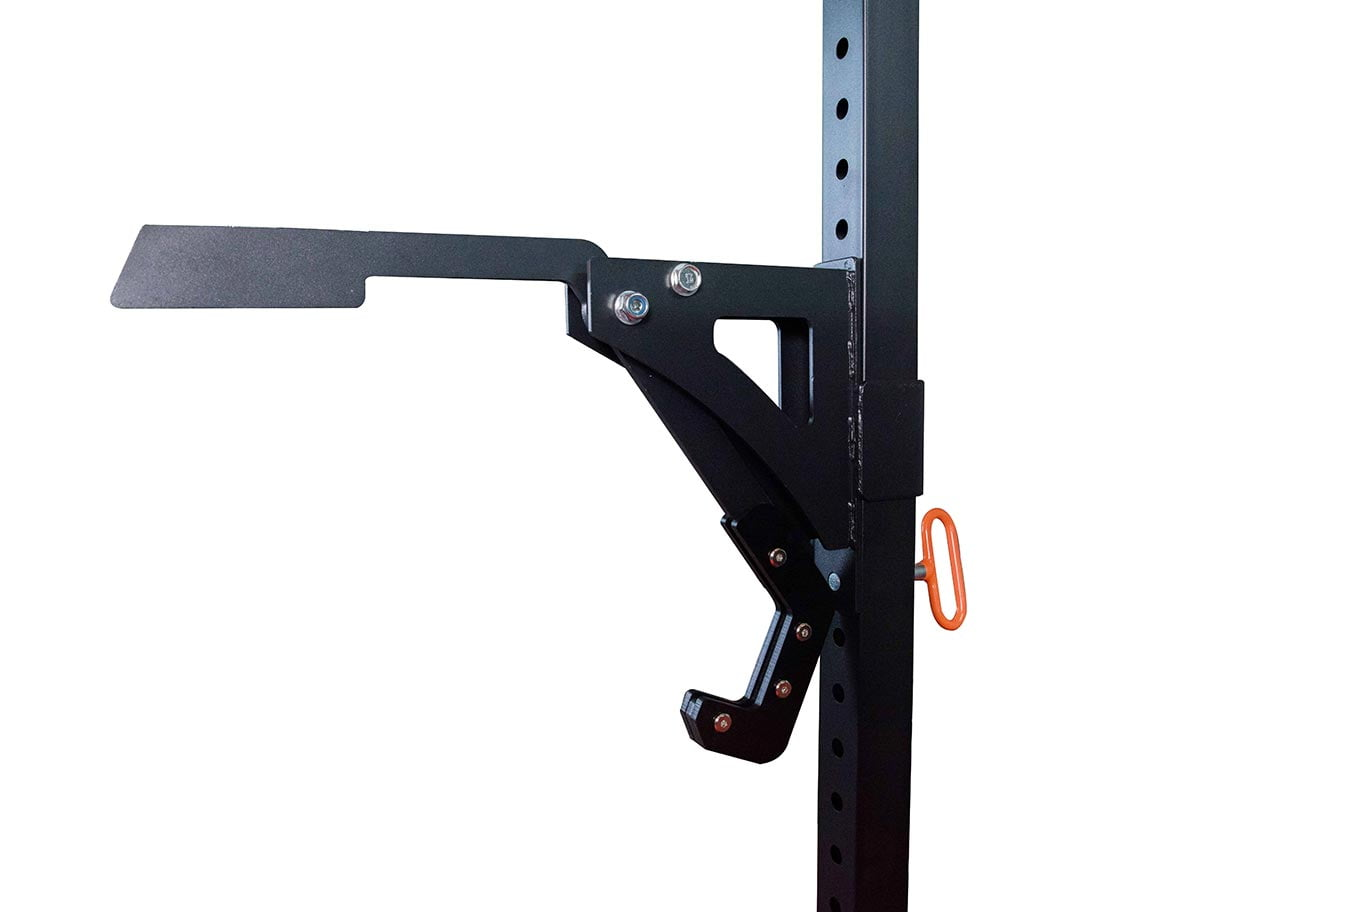 Monolift Attachment - Adjustable - By B.o.S.